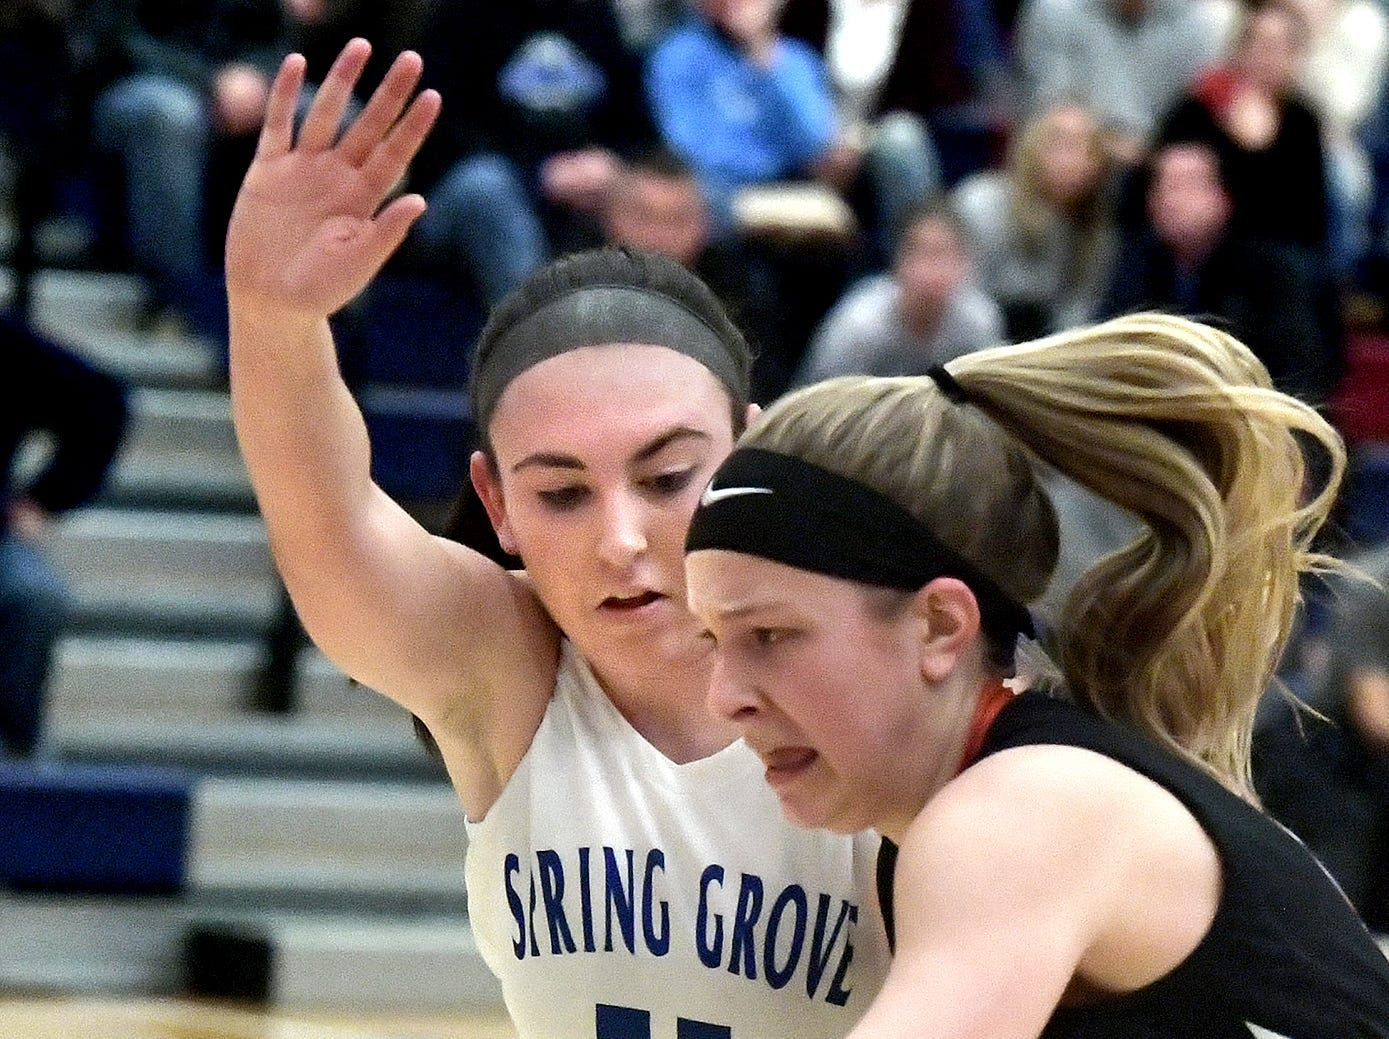 Spring Grove's Haley Wagman keeps pace with Central York's Katie Markel during basketball action at Spring Grove Tuesday, Jan. 8, 2019. Bill Kalina photo